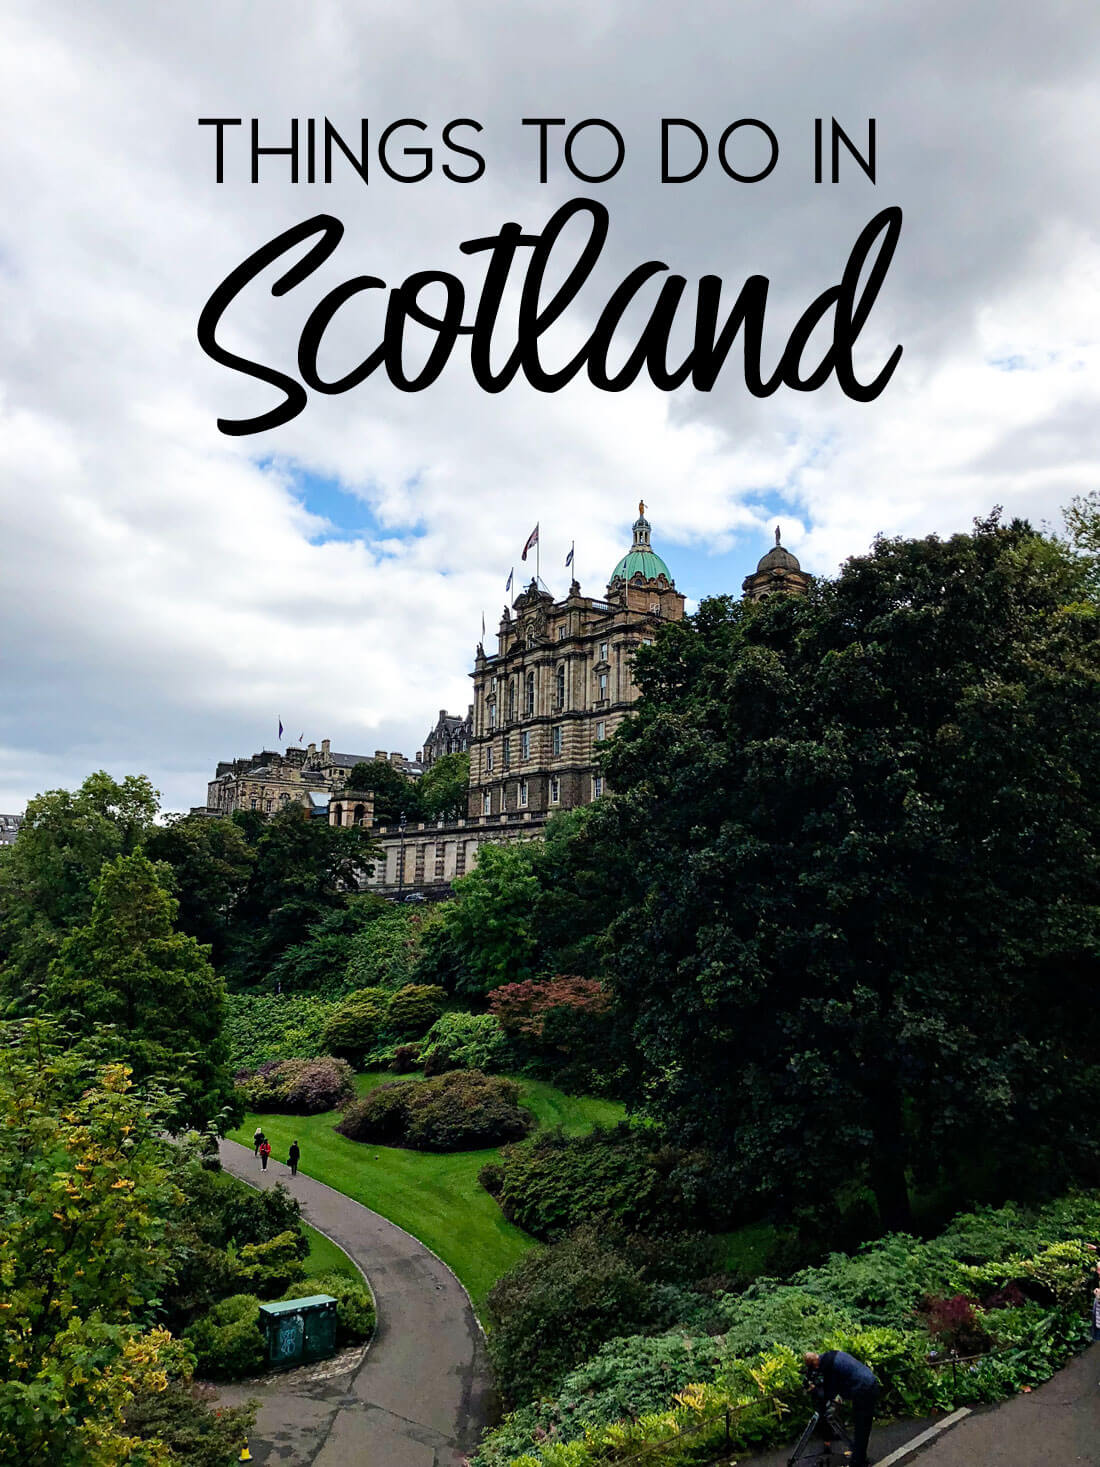 Things to do in Scotland - from castles to the Royal Mile and Loch Ness, you'll fall in love with Scotland!